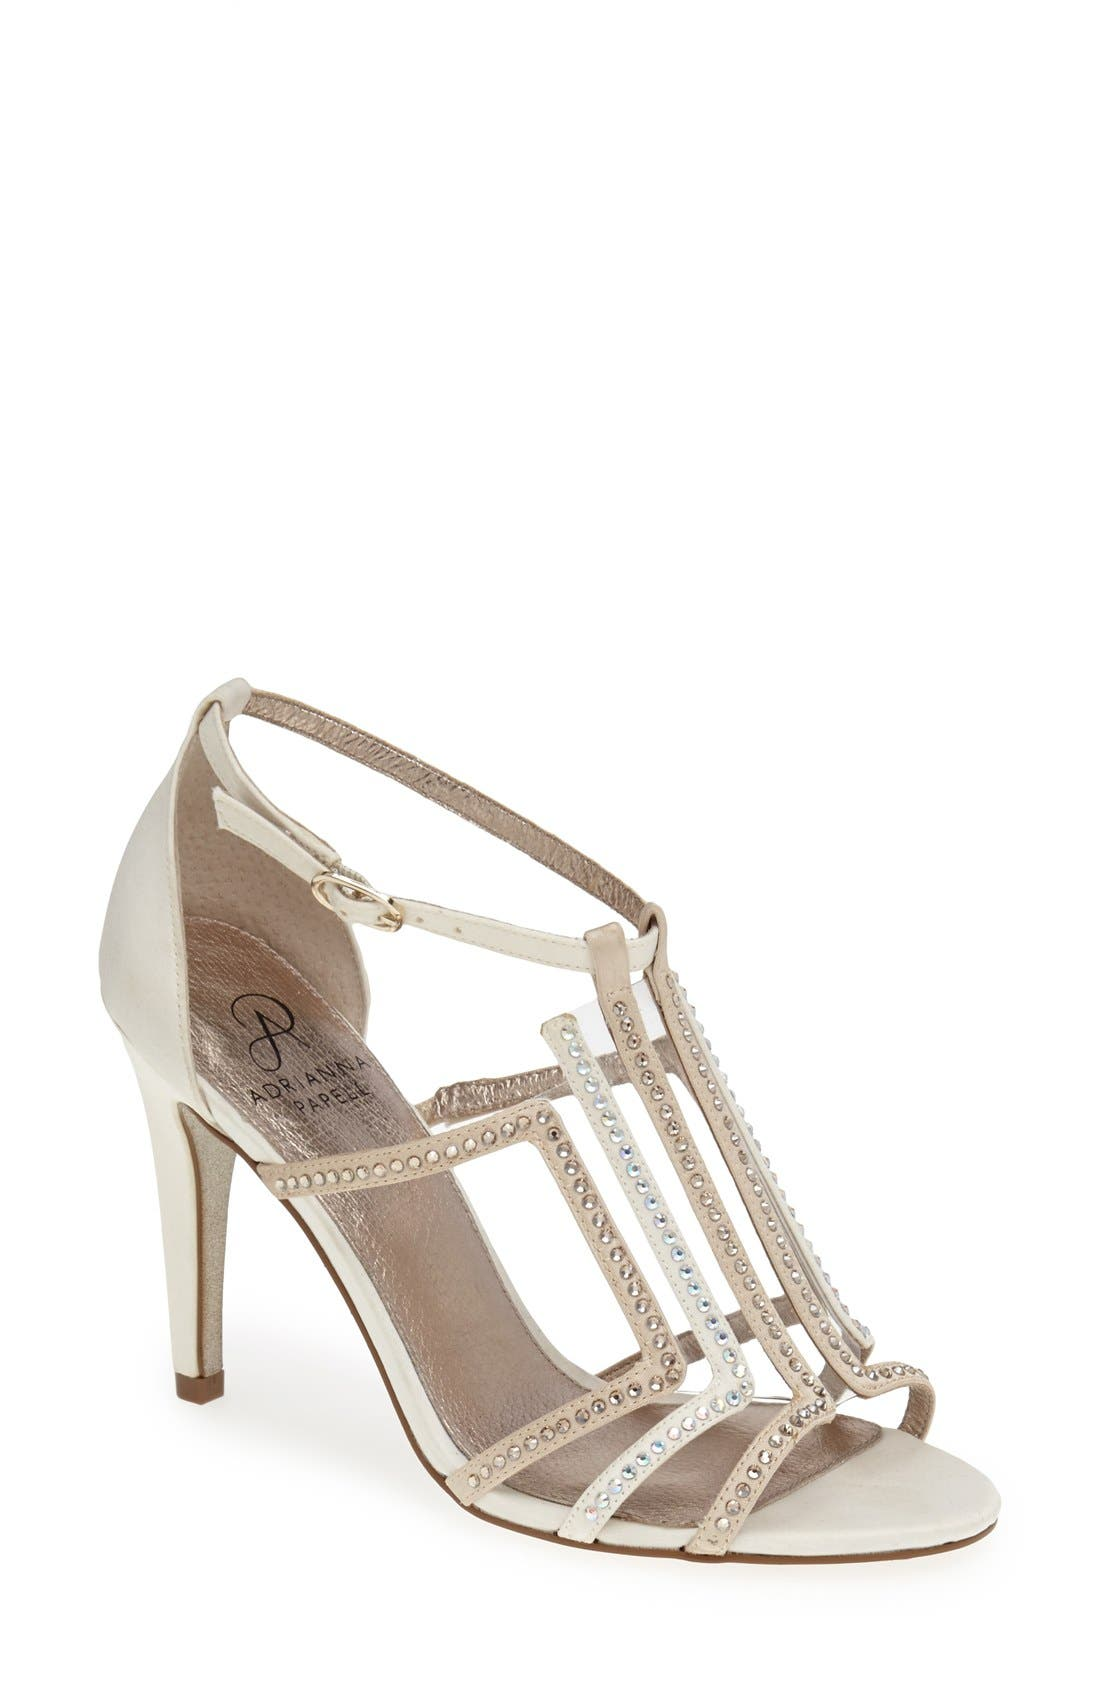 Main Image - Adrianna Papell 'Emilia' Sandal (Online Only Color)